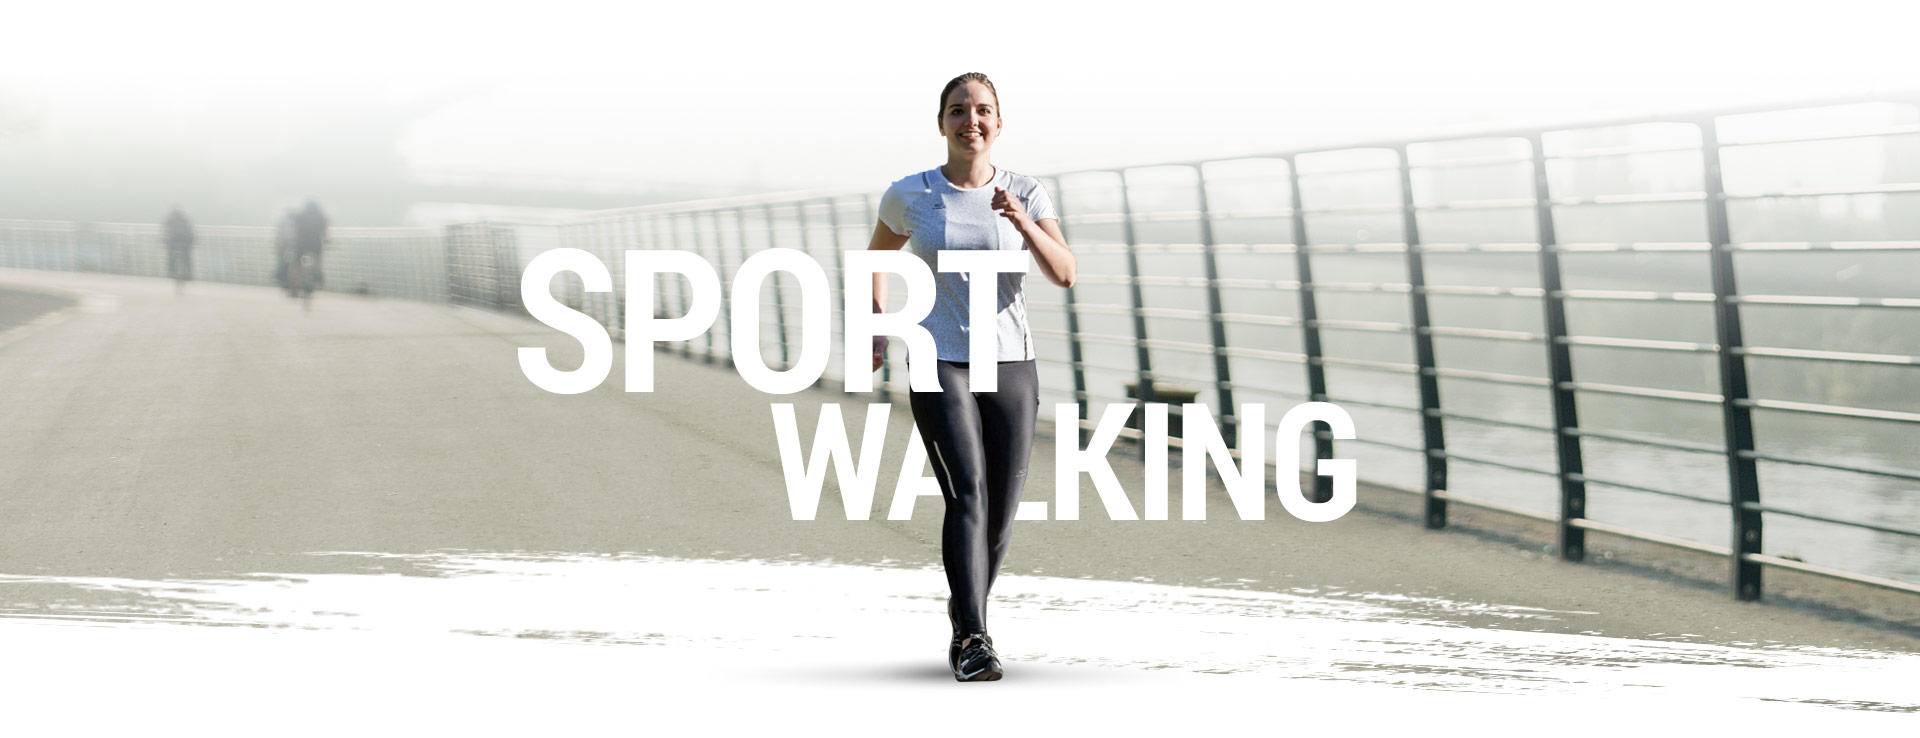 Newfeel sport walking